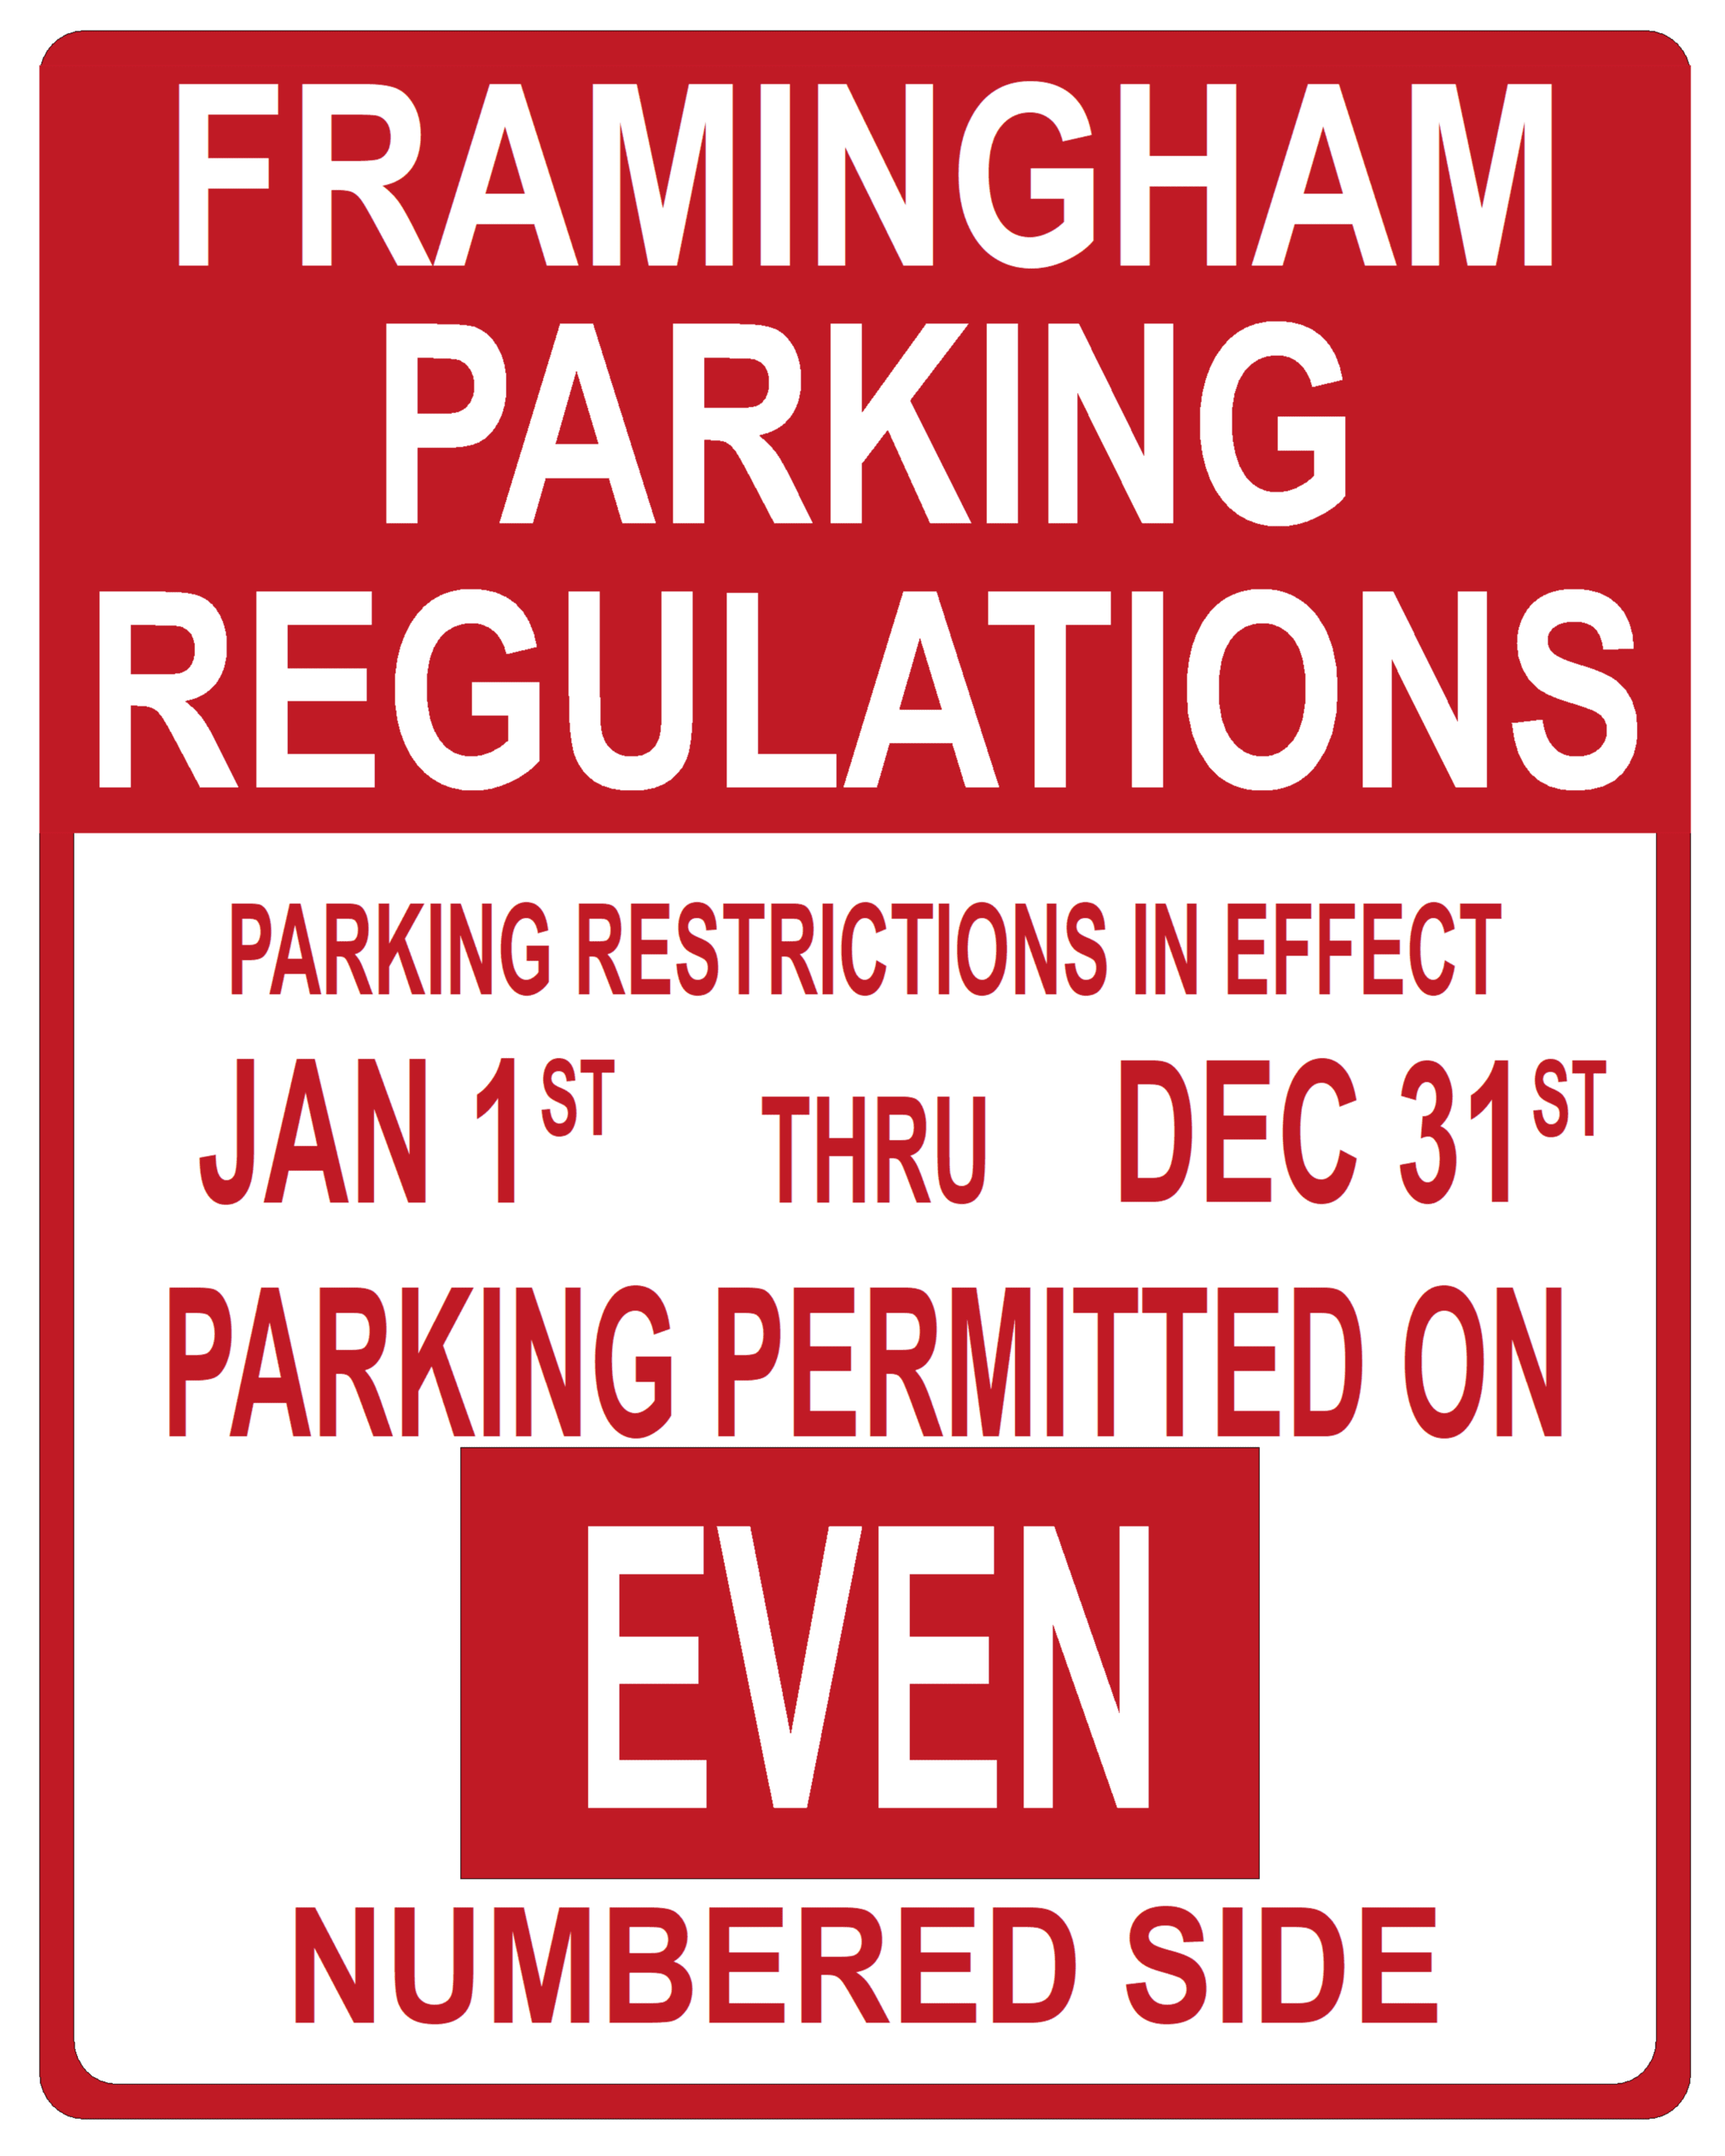 Framingham Parking Regulations - Parking restrictions in effect Jan. 1st thru Dec. 31 Parking permit